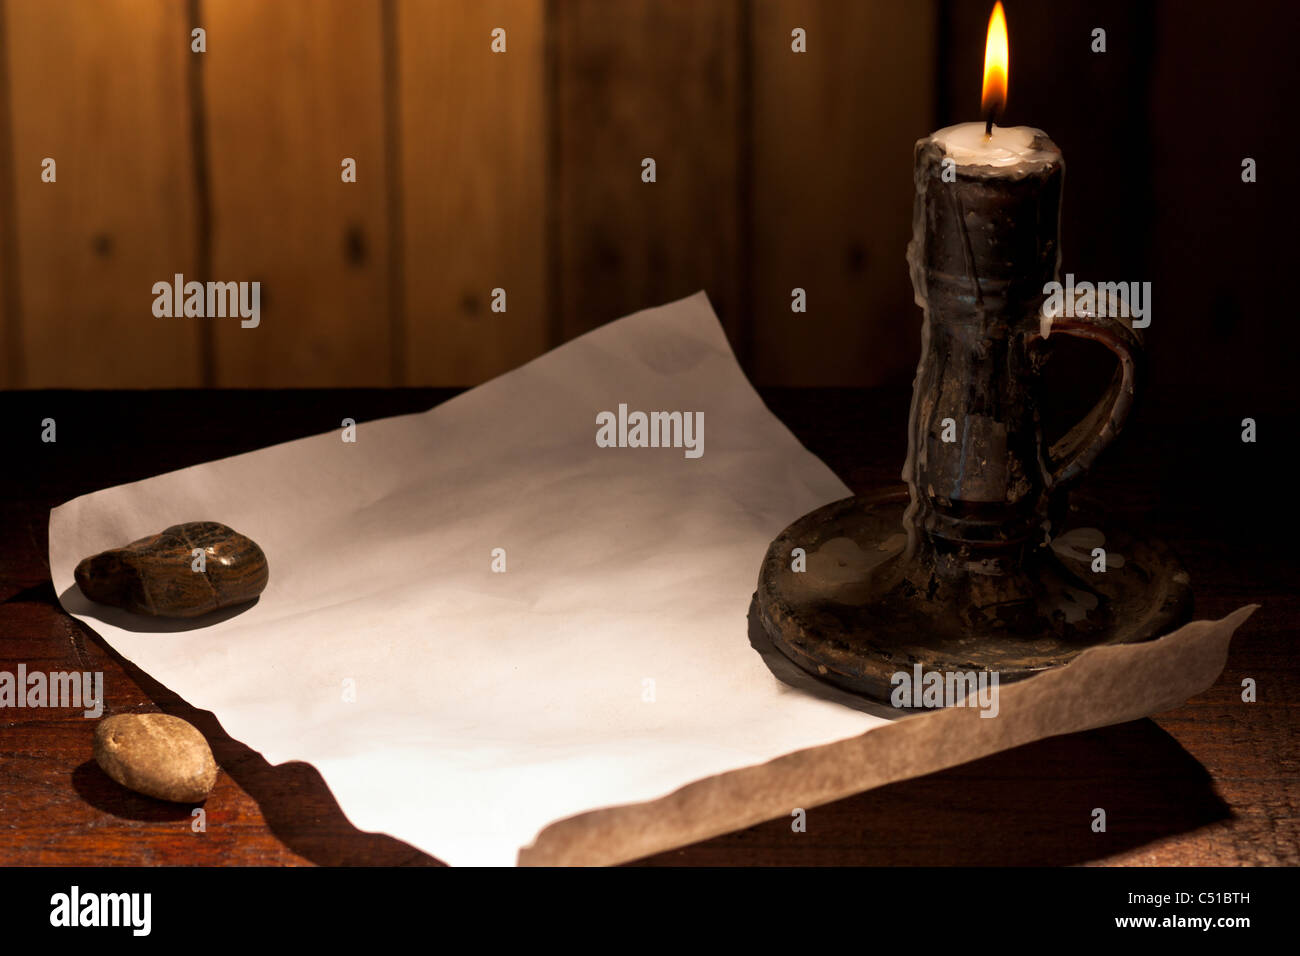 Paper Sheet with Candle - Stock Image